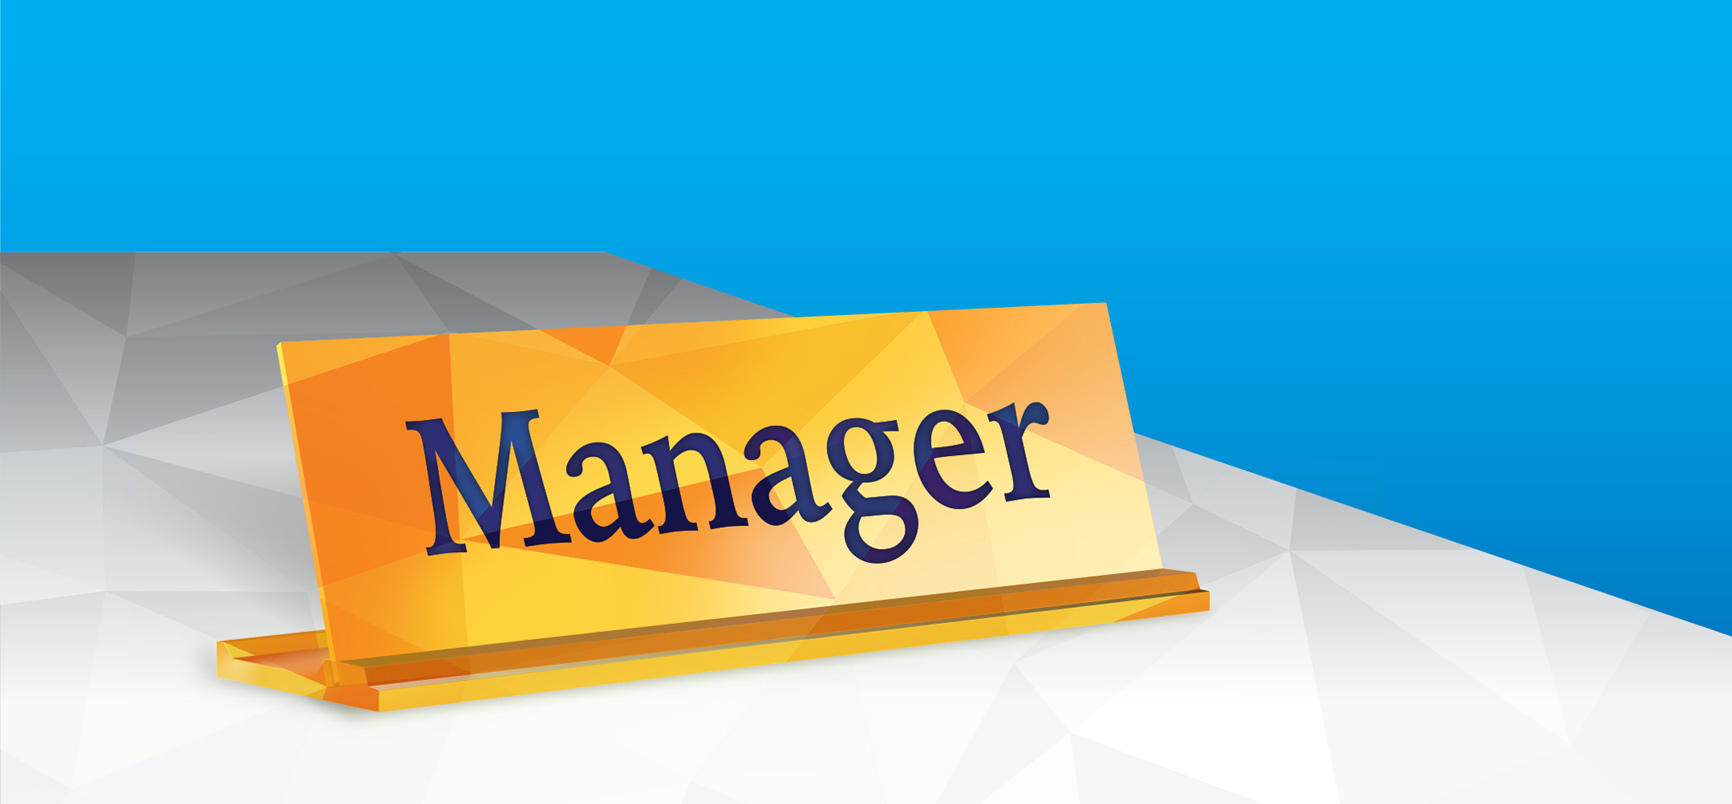 How to Use Management Styles That Work for Your Employees